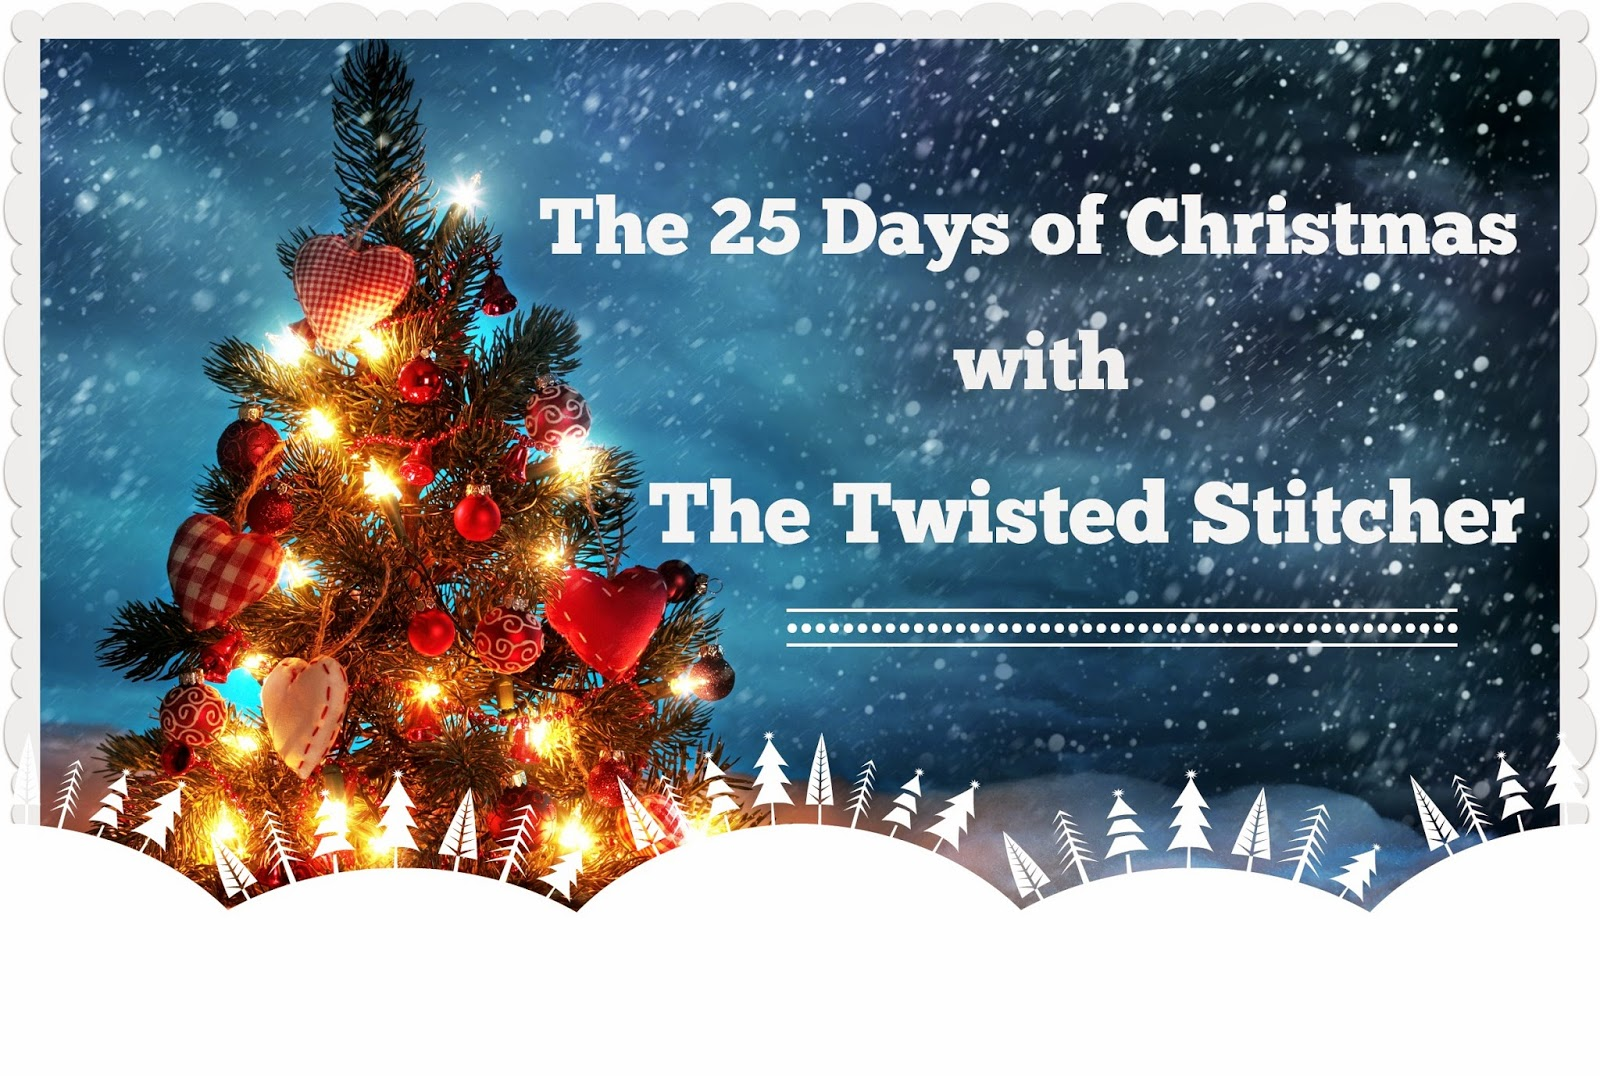 The Twisted Stitcher: Day 6 ...